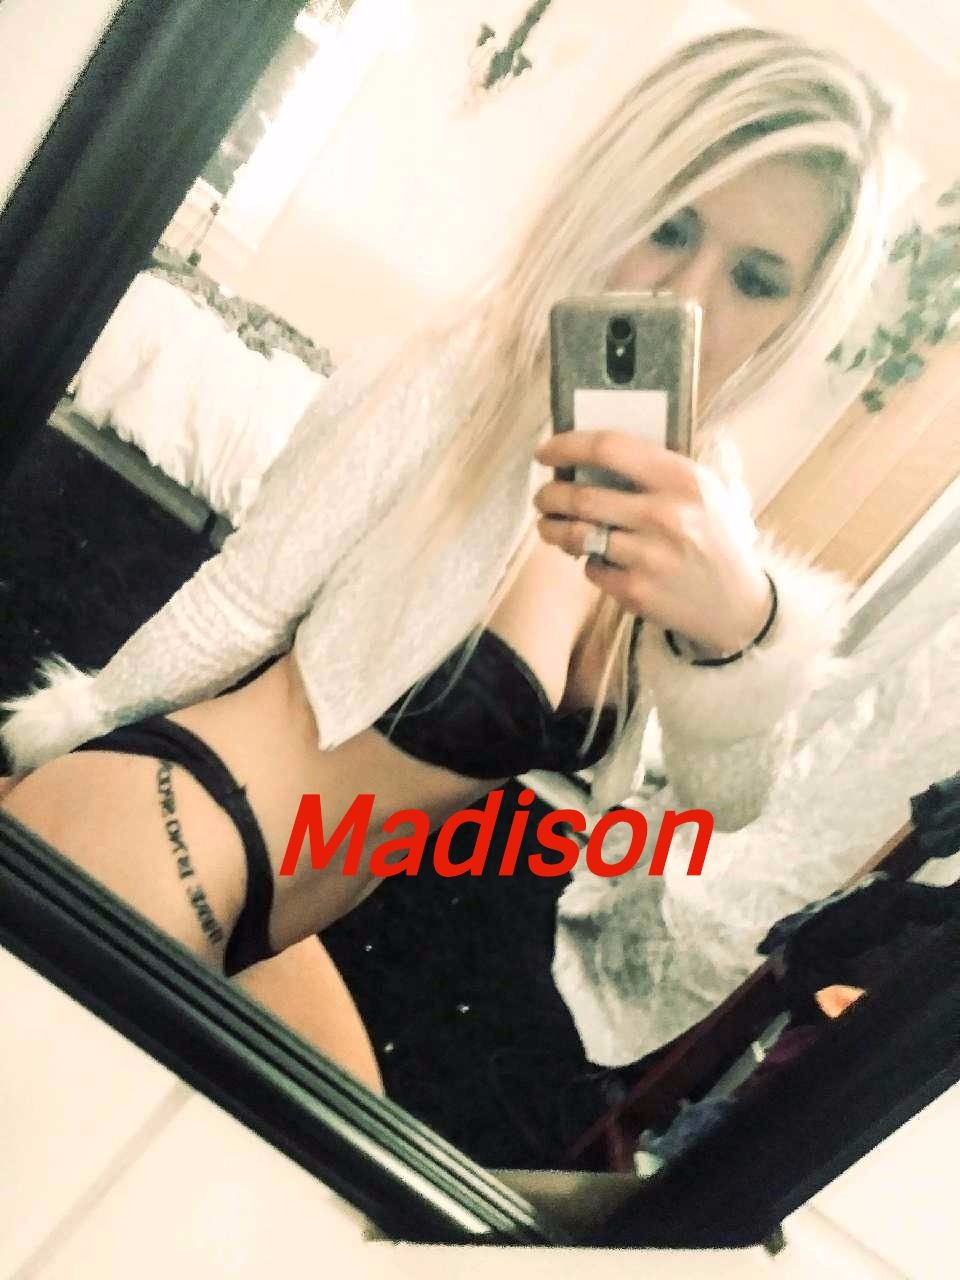 stripper Madison